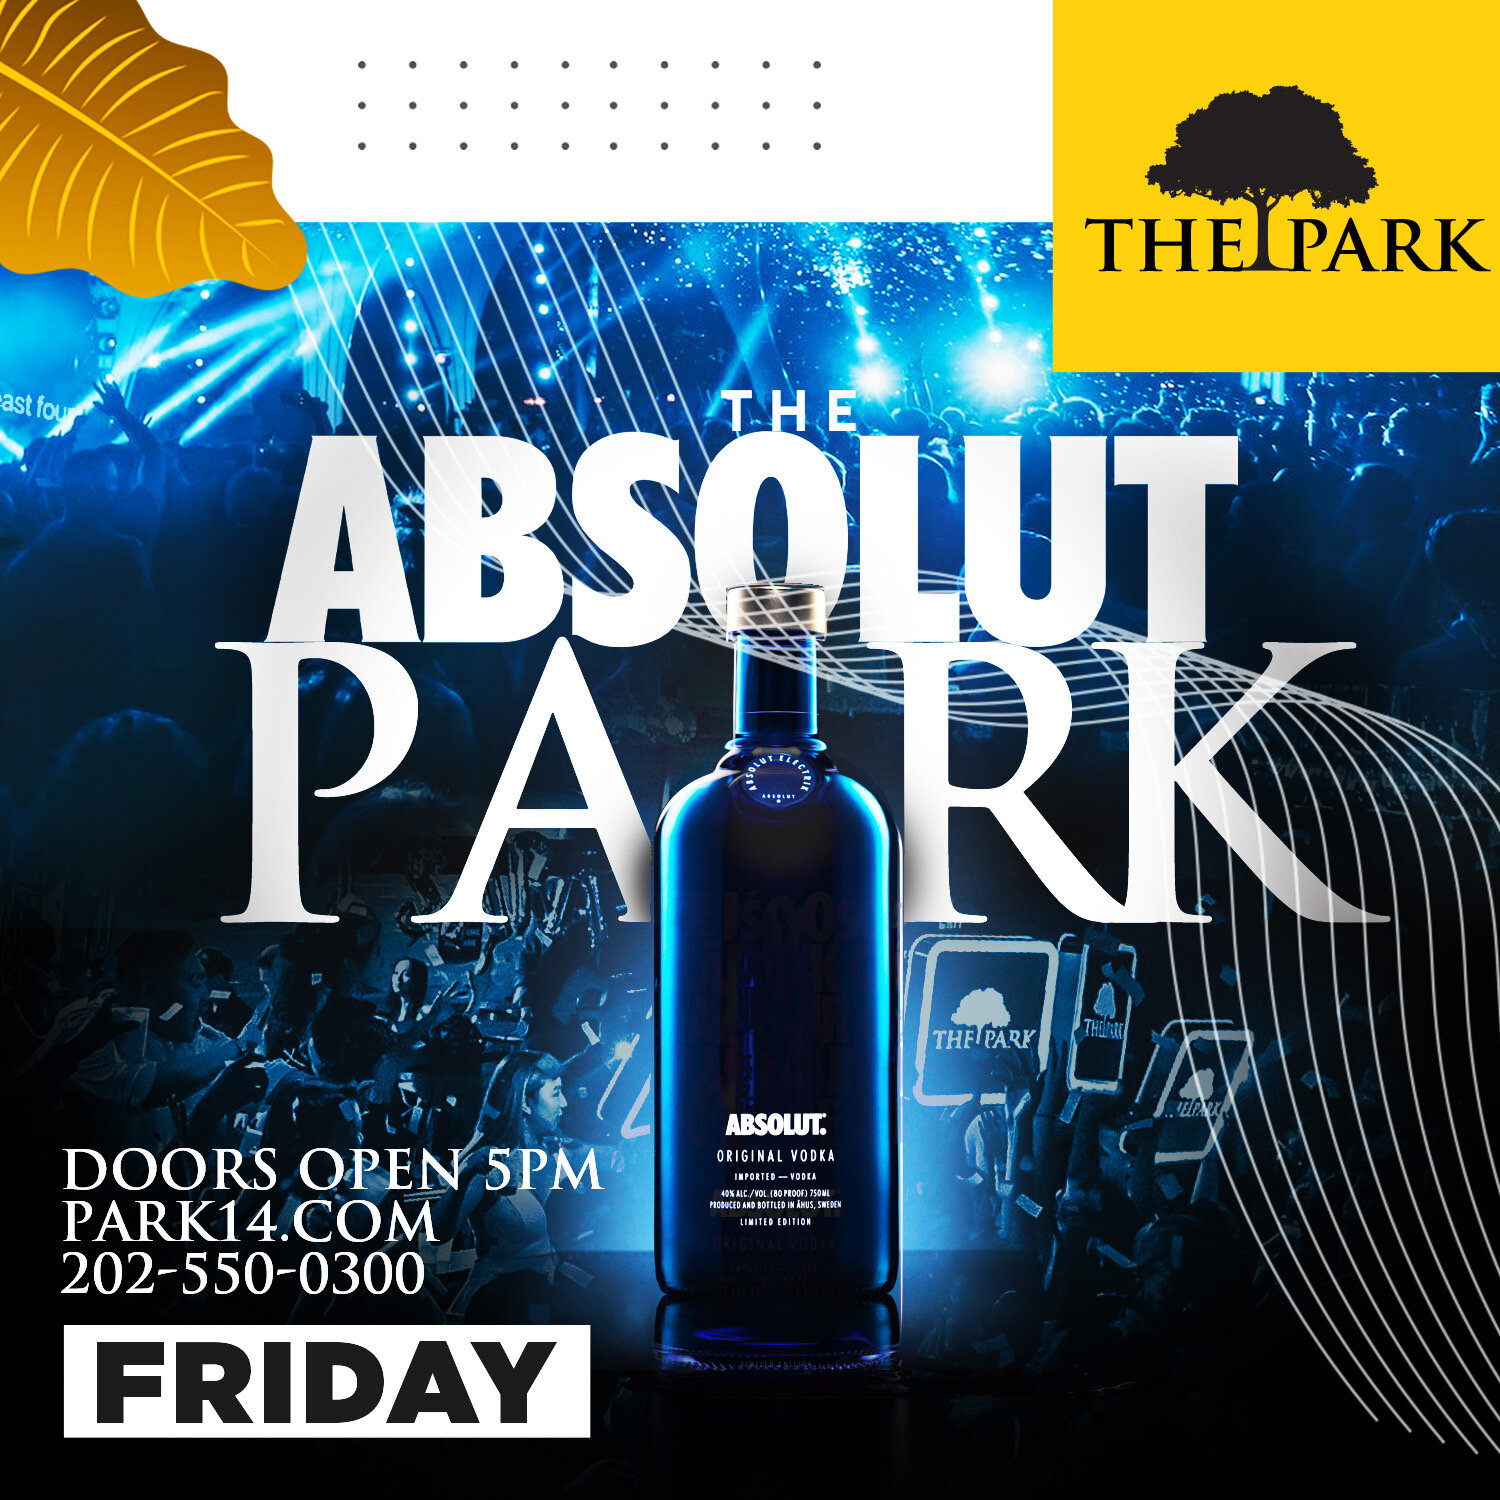 Absolut-Park-+-.jpeg